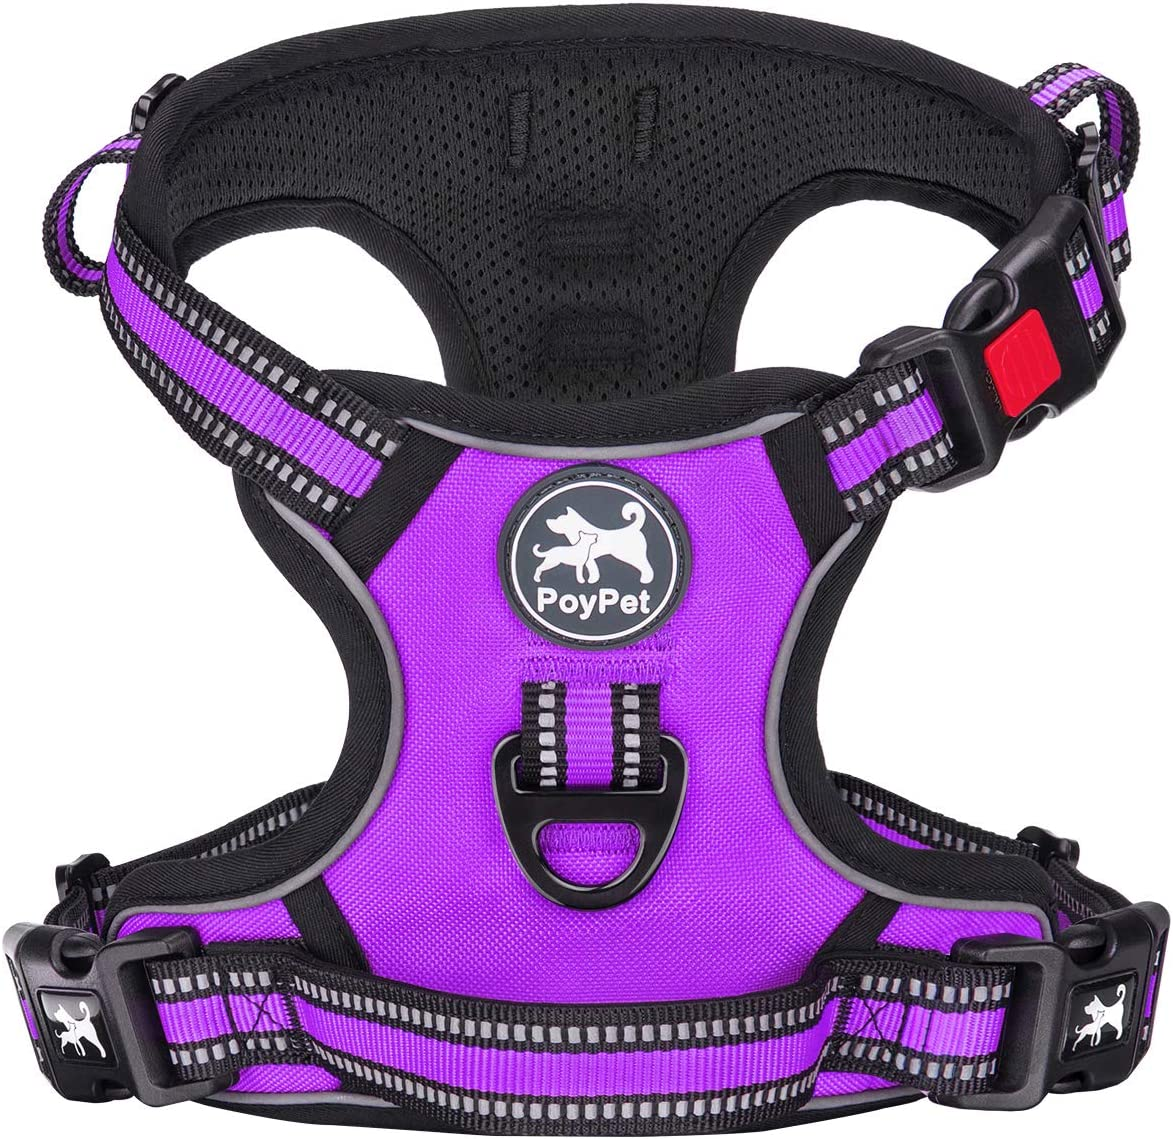 PoyPet No Pull Dog Harness, [Release on Neck] Reflective Adjustable No Choke Pet Vest with Front & Back 2 Leash Attachments, Soft Control Training Handle for Small Medium Large Dogs